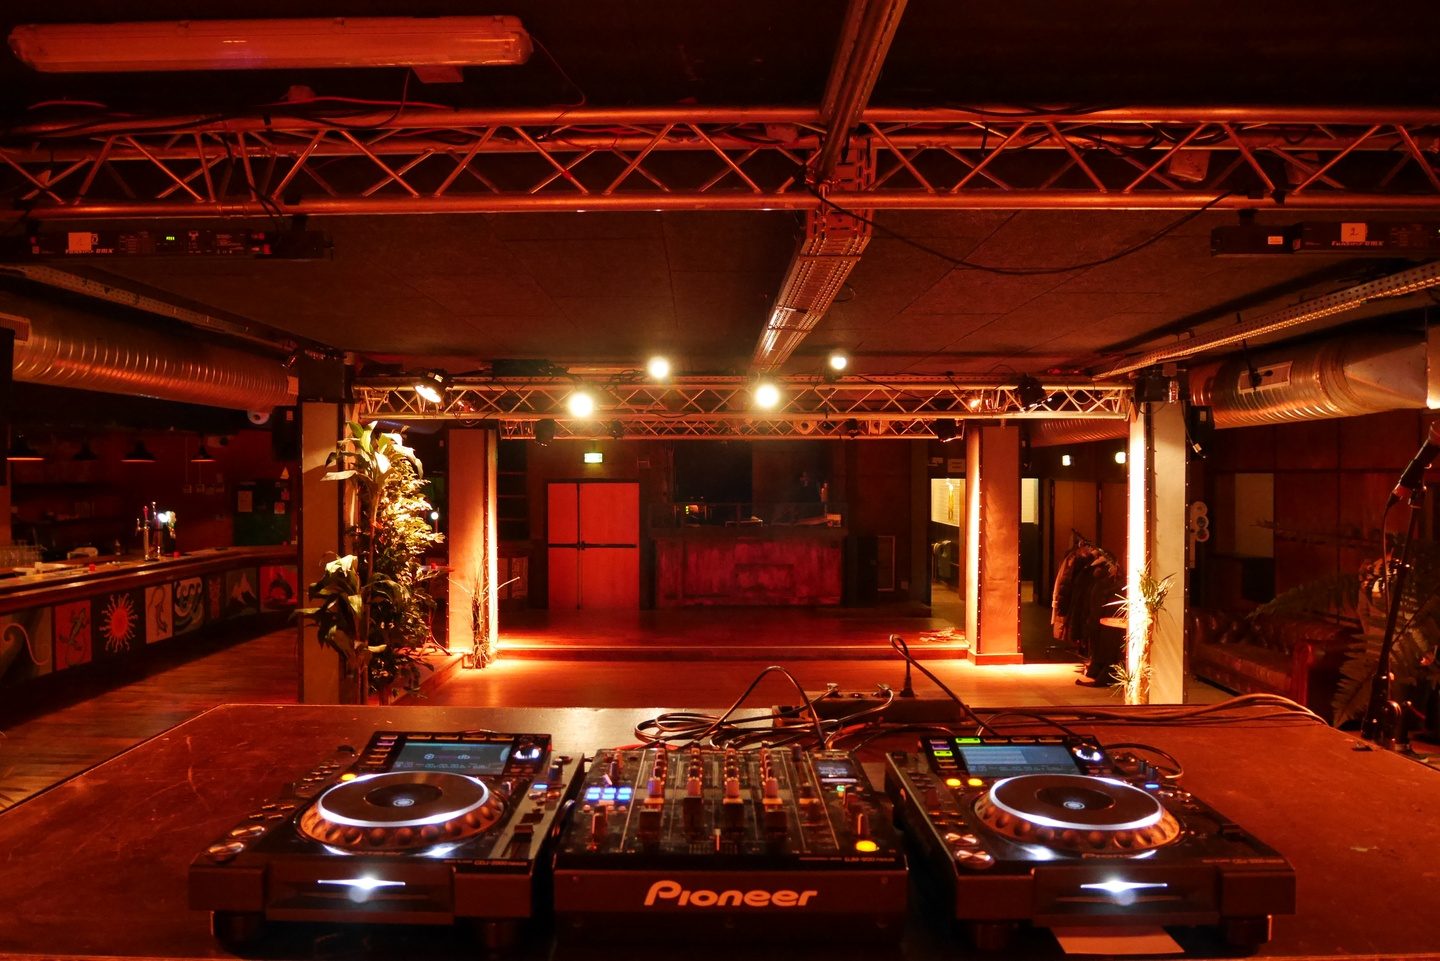 Paris corporate event venues Party room La Bellevilloise - Le Club image 11